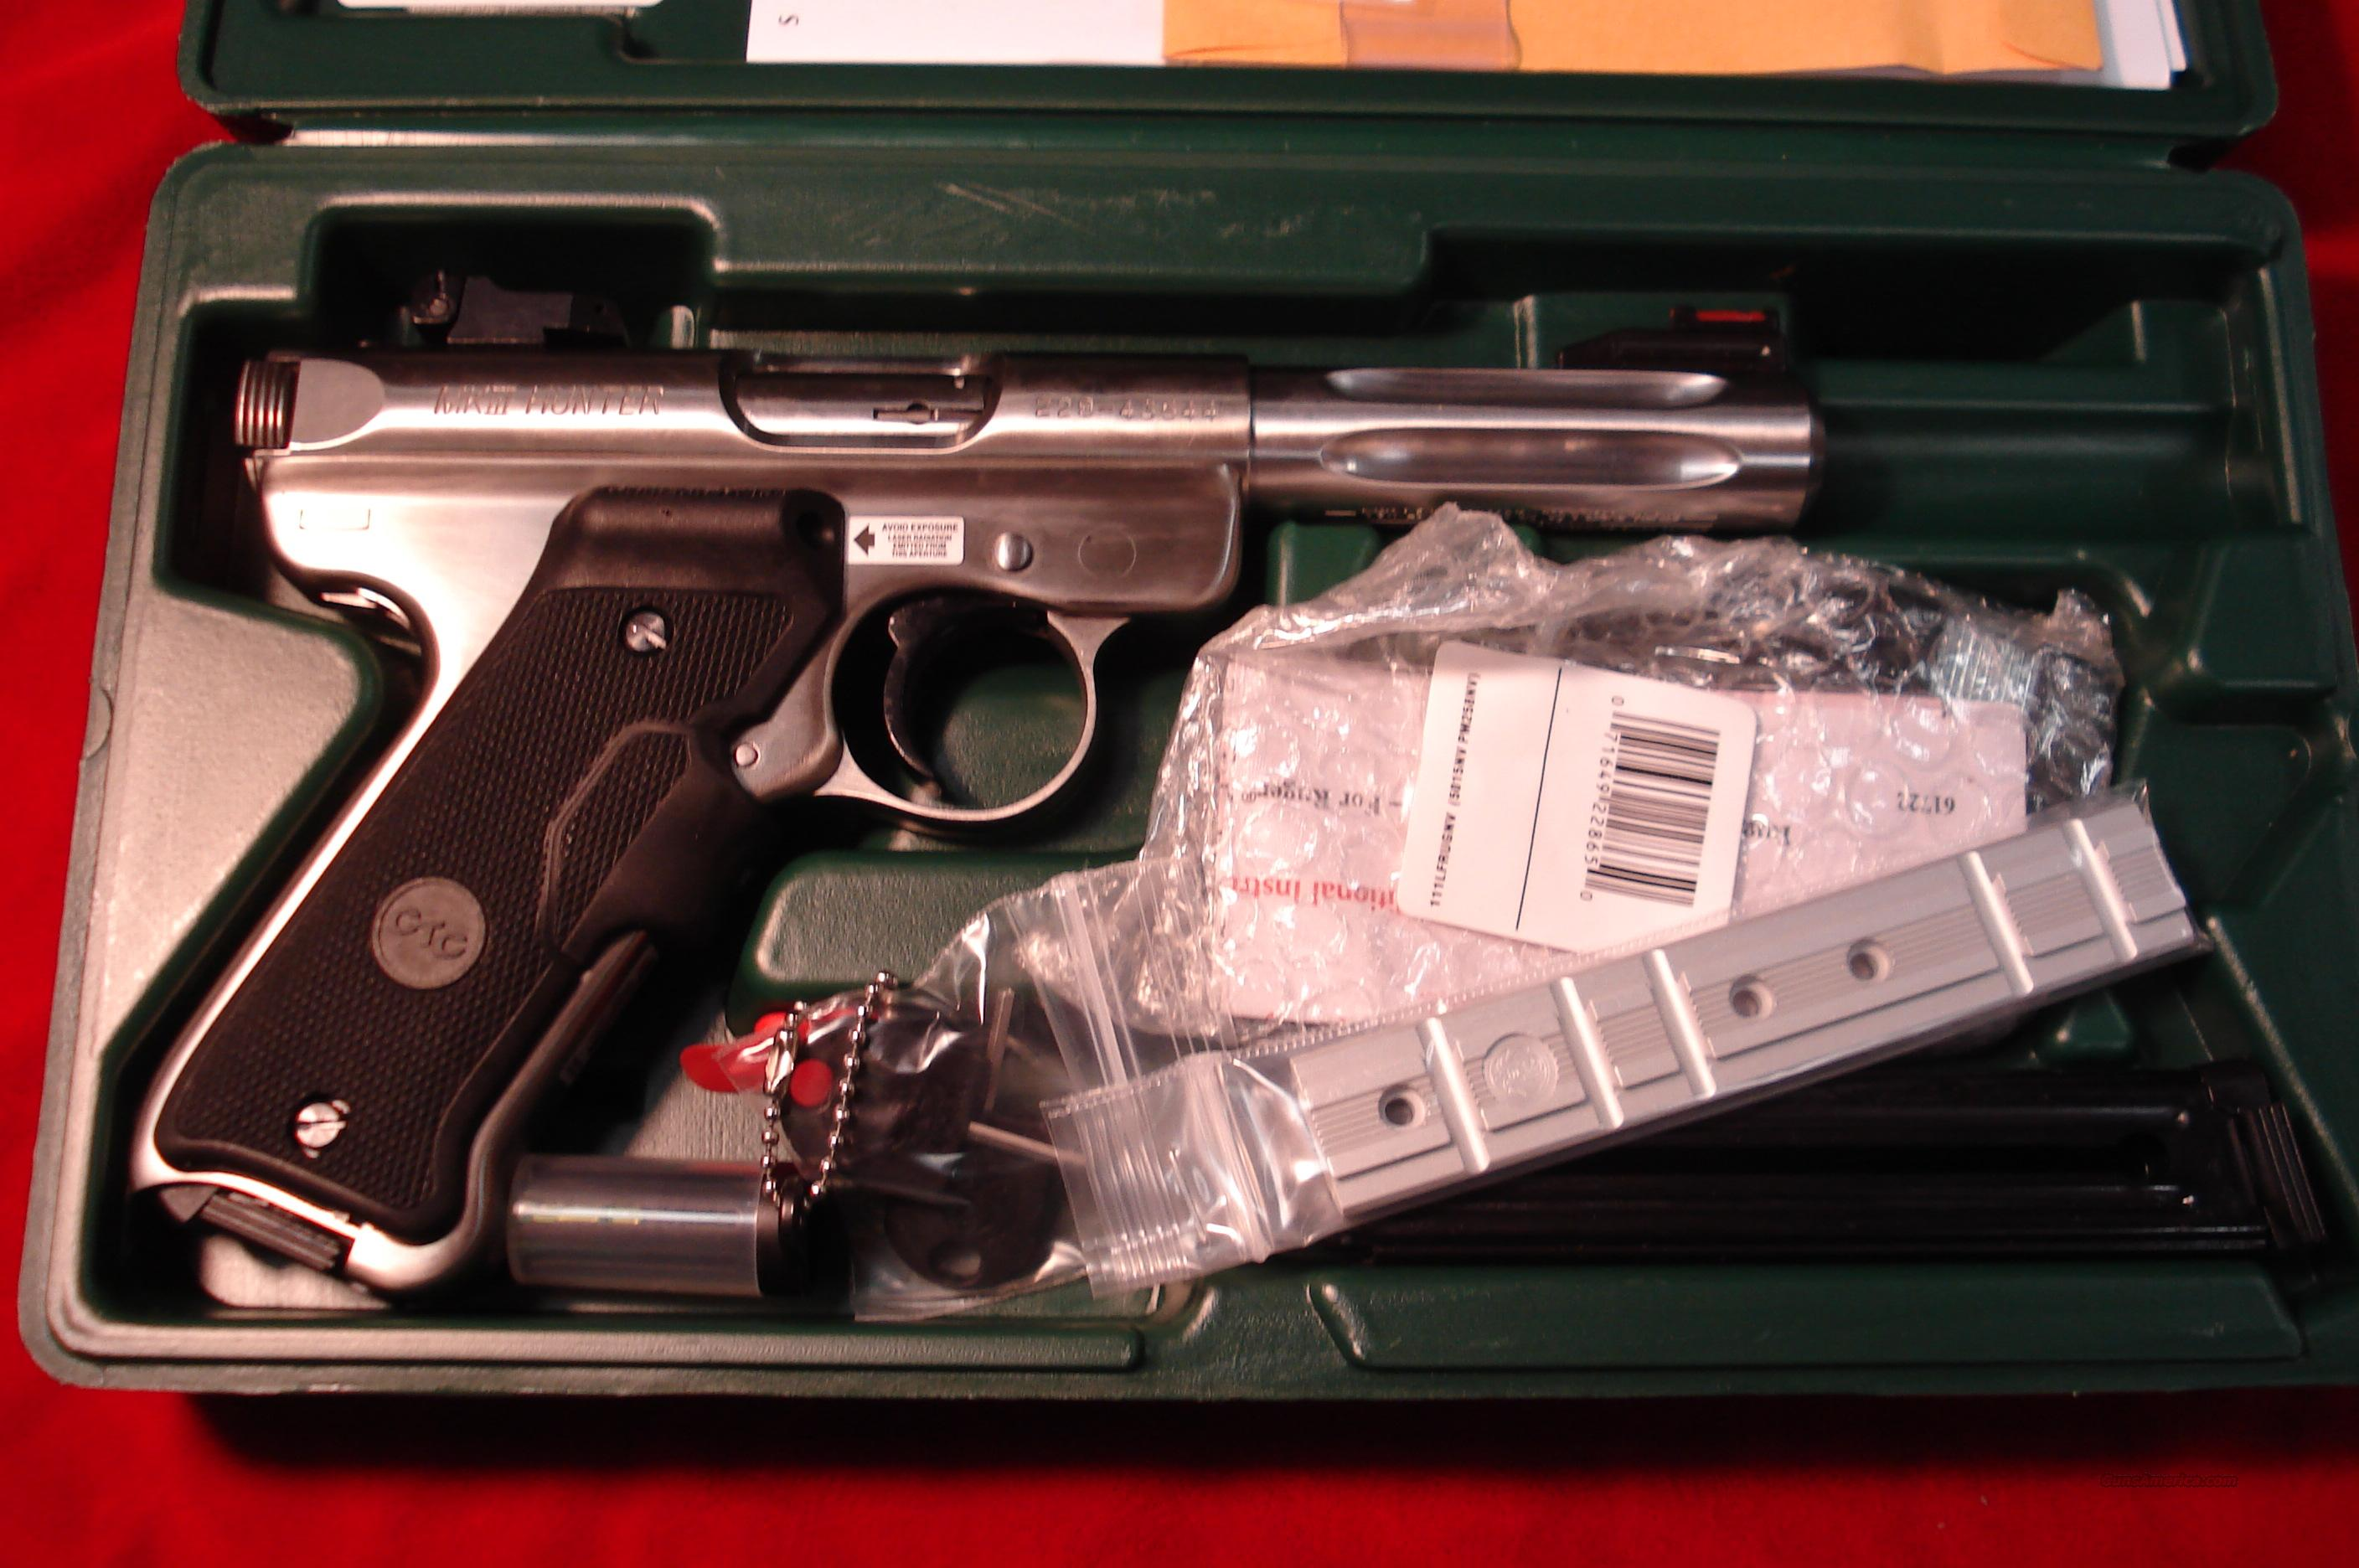 "RUGER MKIII  HUNTER 4.5"" STAINLESS W/CRIMSON TRACE GRIPS NEW  Guns > Pistols > Ruger Semi-Auto Pistols > Mark II Family"